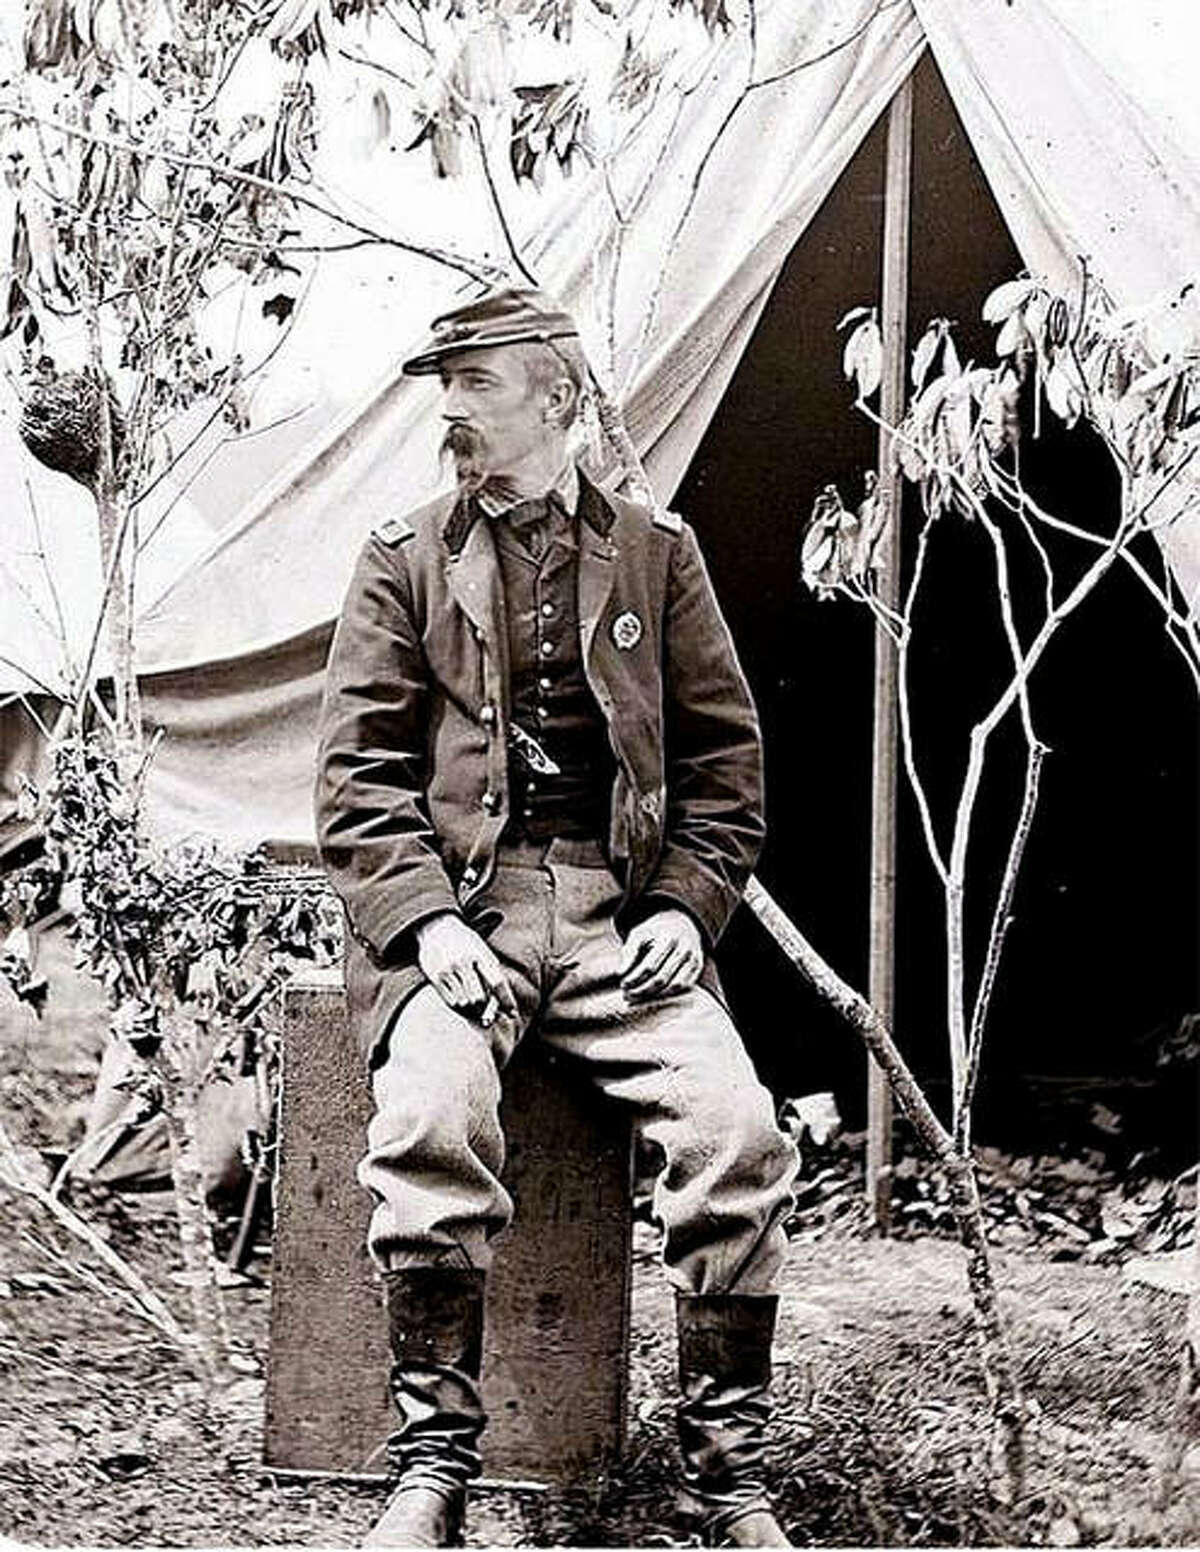 """Does the spirit of a Union Army soldier from the Civil War visit the East Alton Ice Arena? Some say they have seen a spirit in similar dress to this soldier on different occasions at the rink. Ice Arena employees have affectionately nicknamed him """"Rinky."""""""